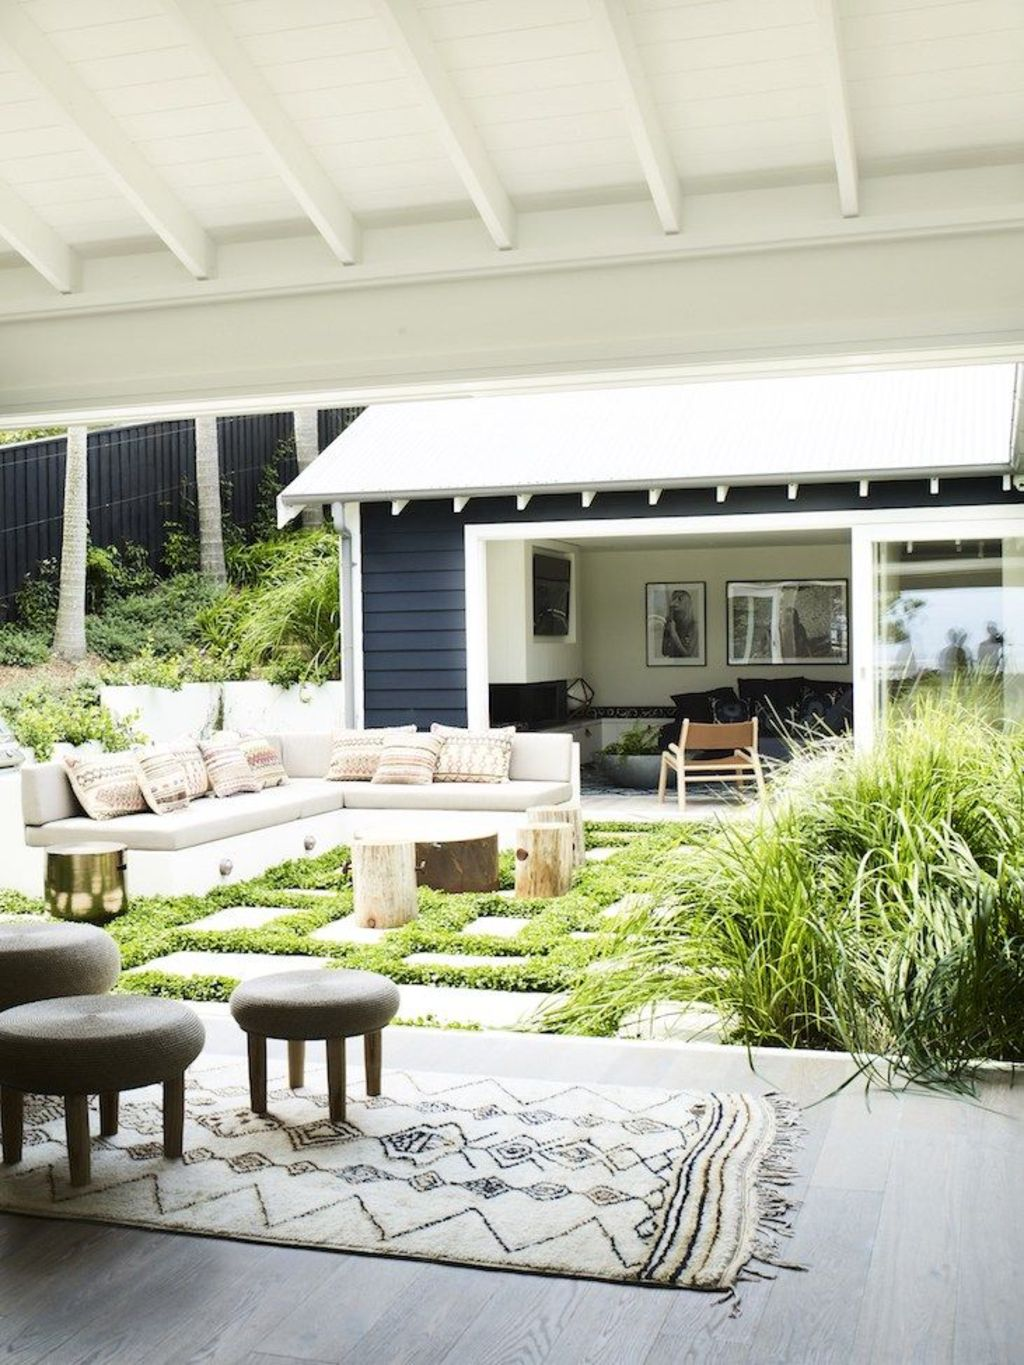 Back porch design ideas that perfect for every home as special space to make it anything you want Part (4)